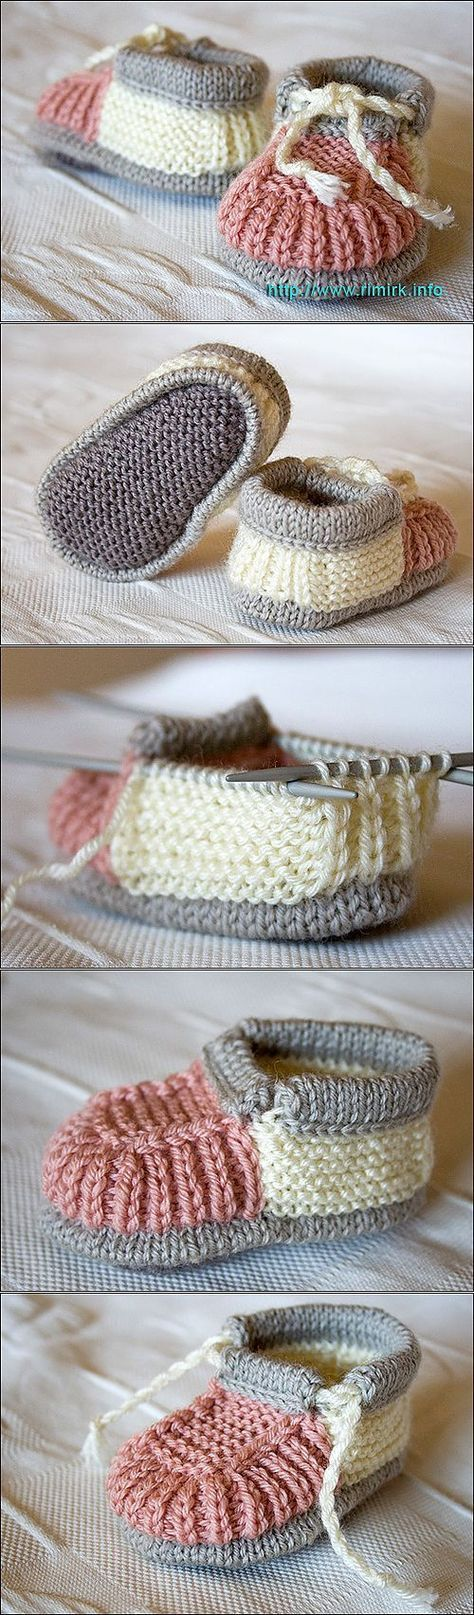 40 + Knit Baby Booties with Pattern #strickanleitungbaby